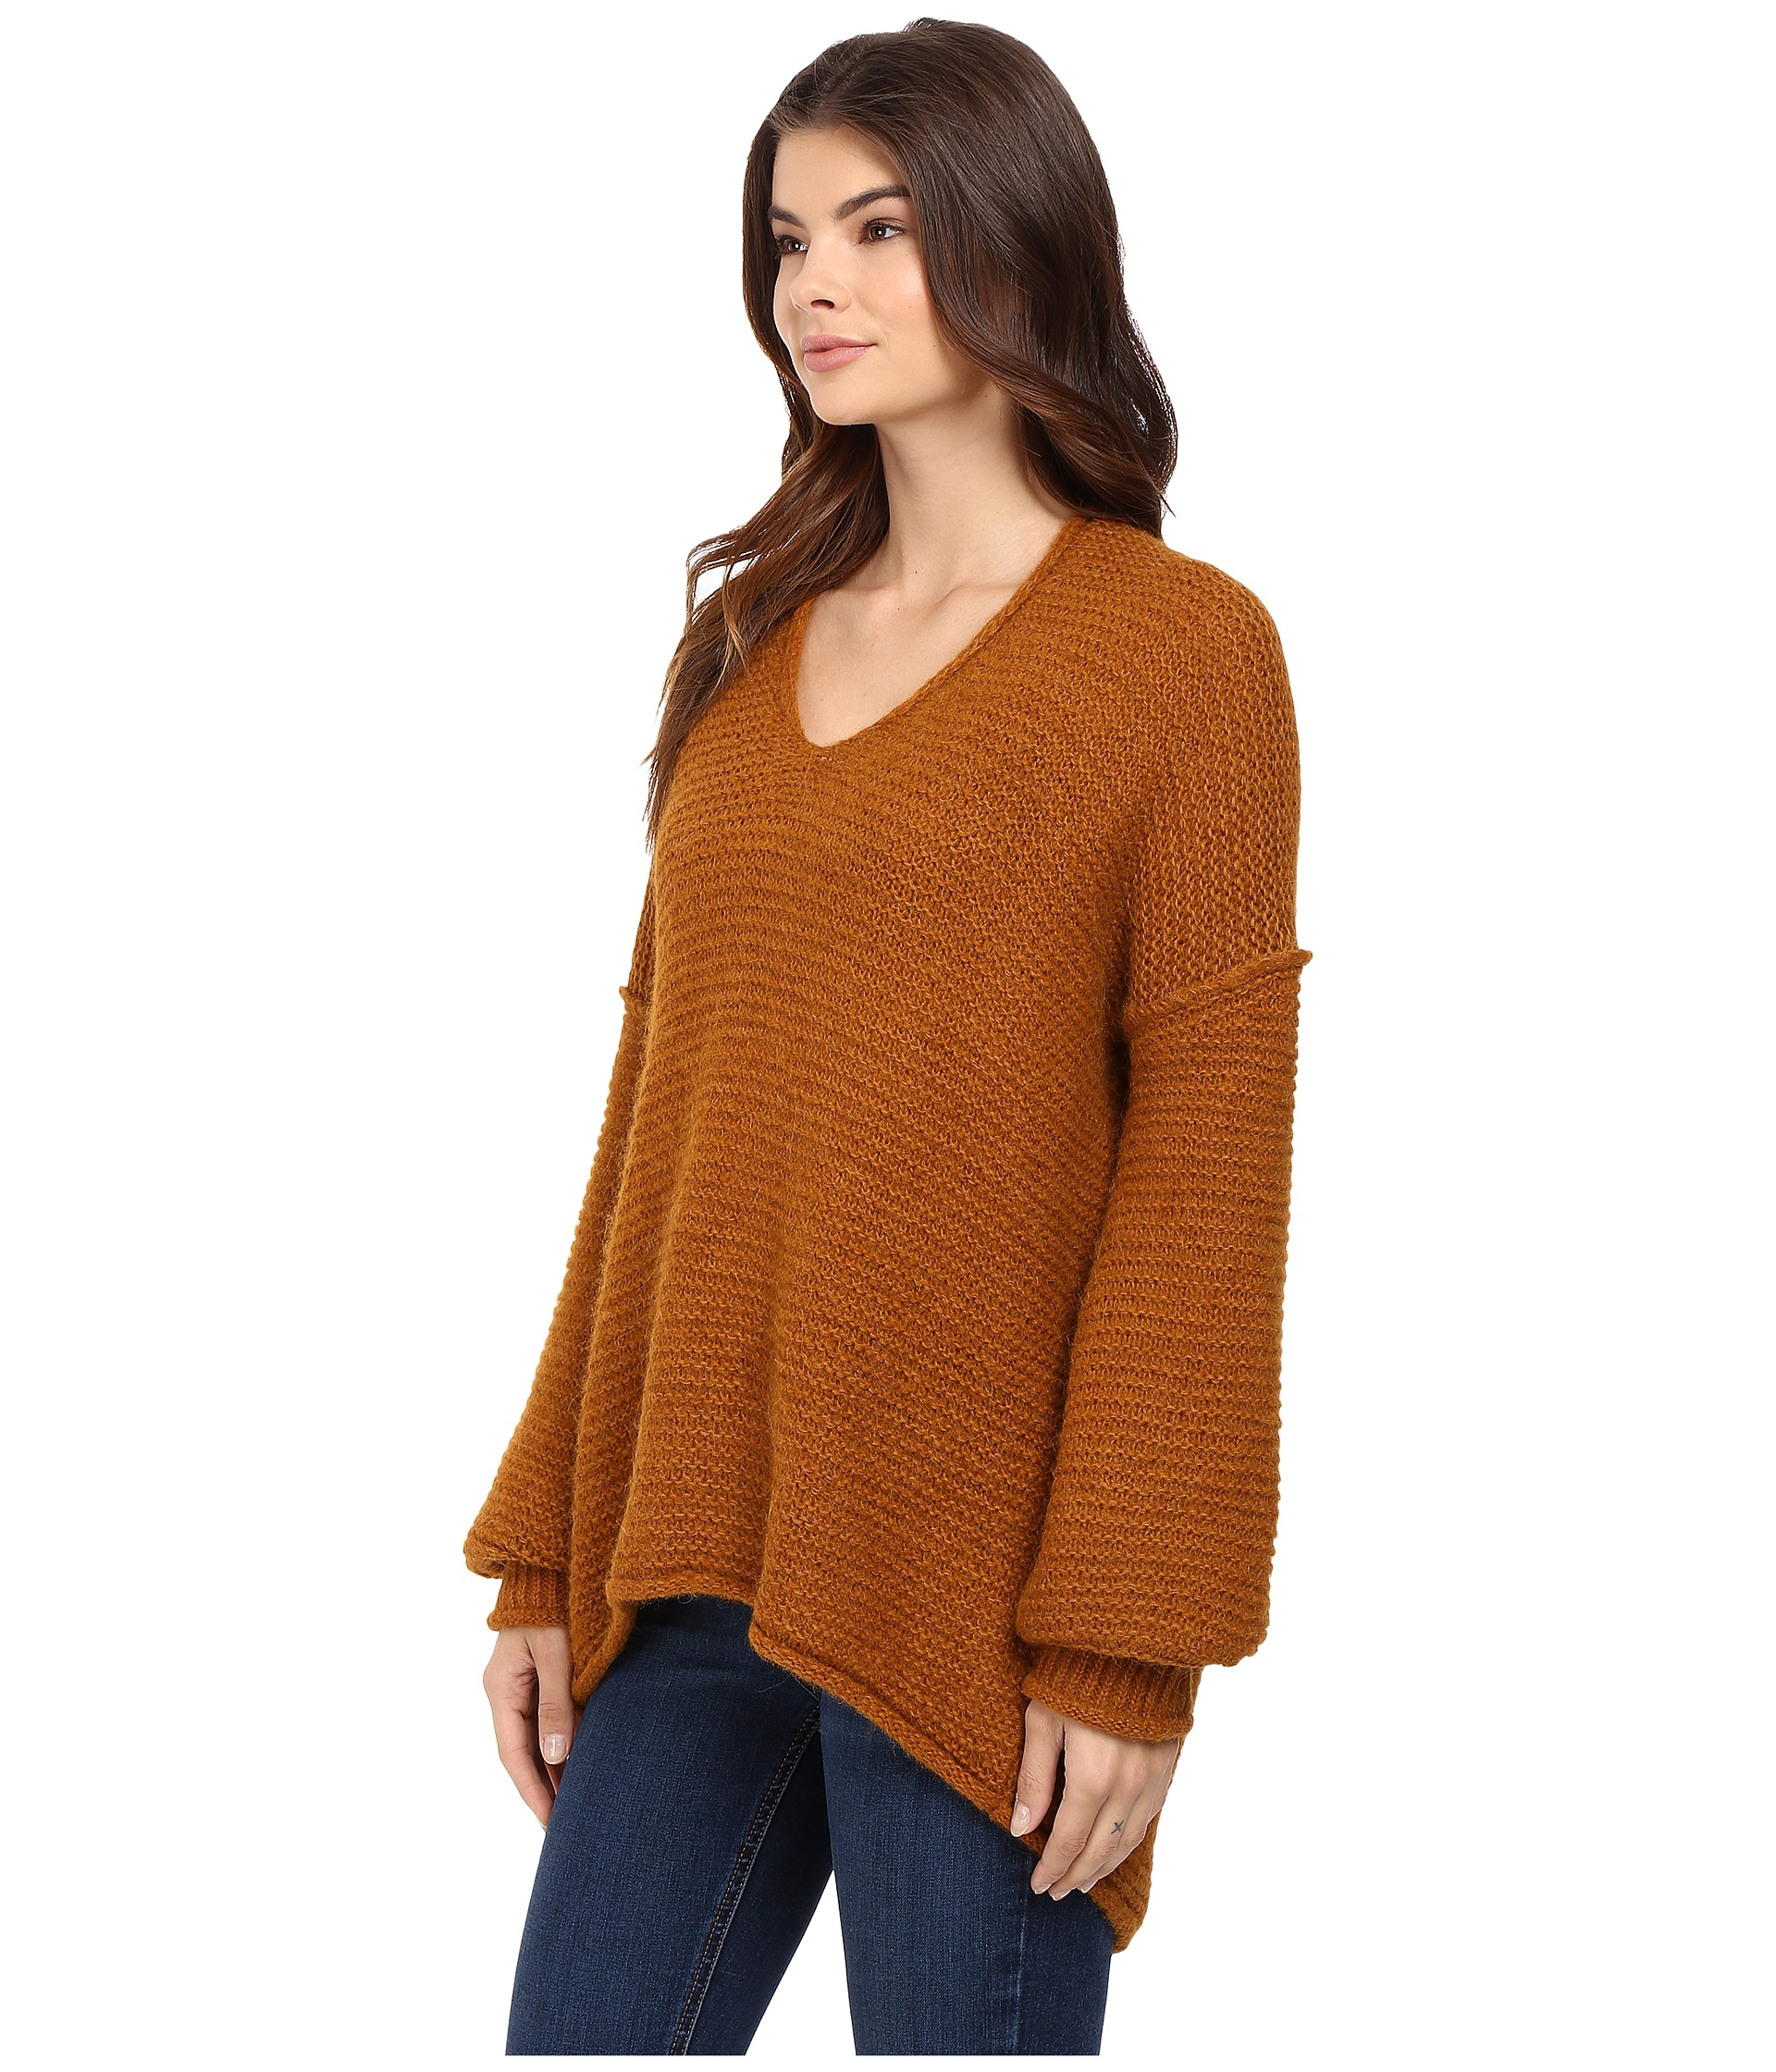 Free People All Mine Sweater Terracotta - Zappos.com Free ...